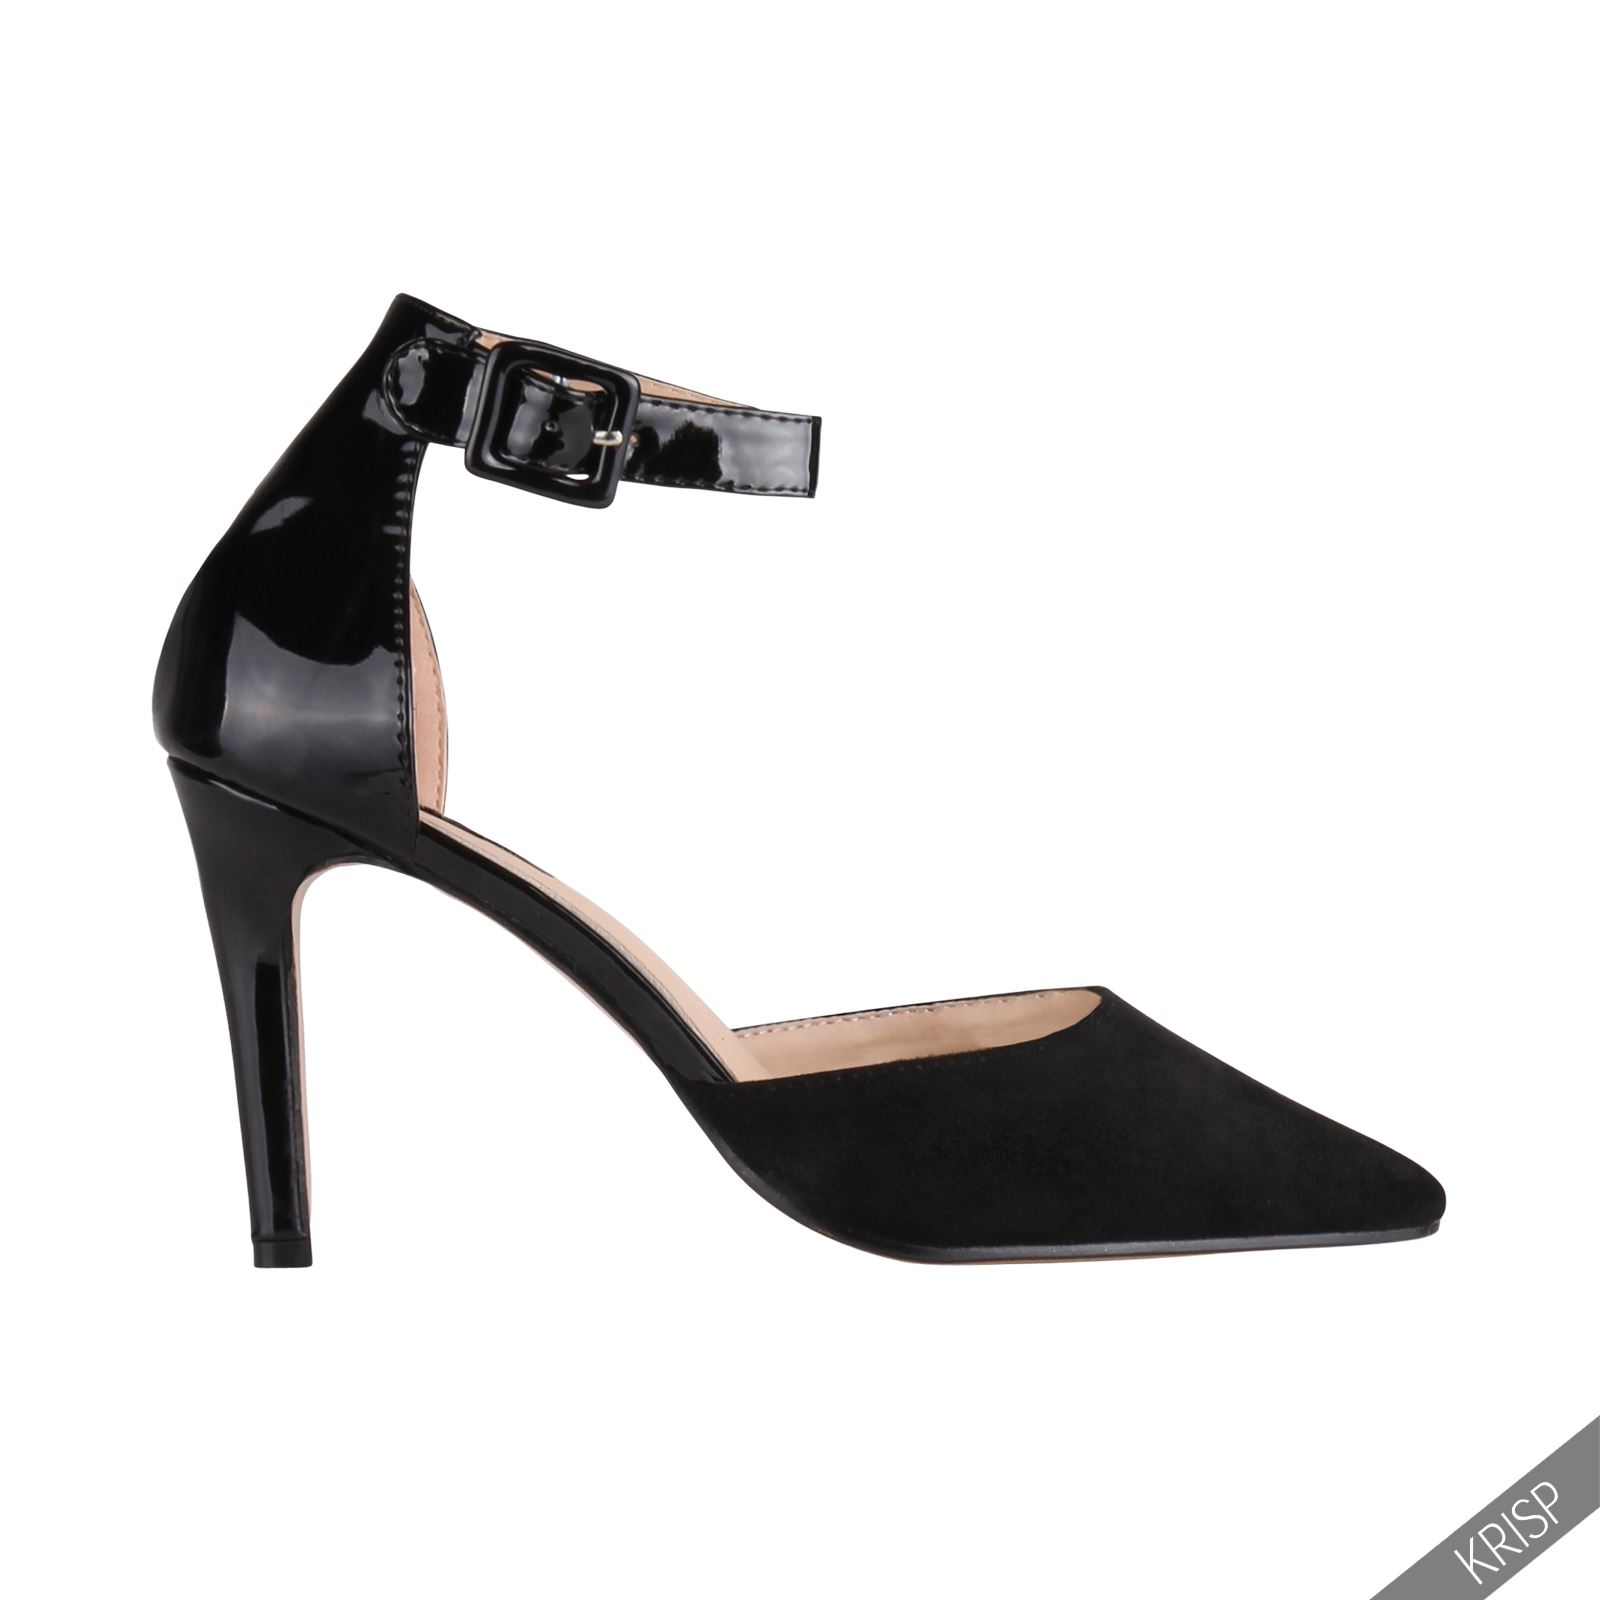 Free shipping on women's ankle strap sandals at kumau.ml from the best brands including Steve Madden, Sam Edelman, Vince Camuto and more. Free shipping and returns.